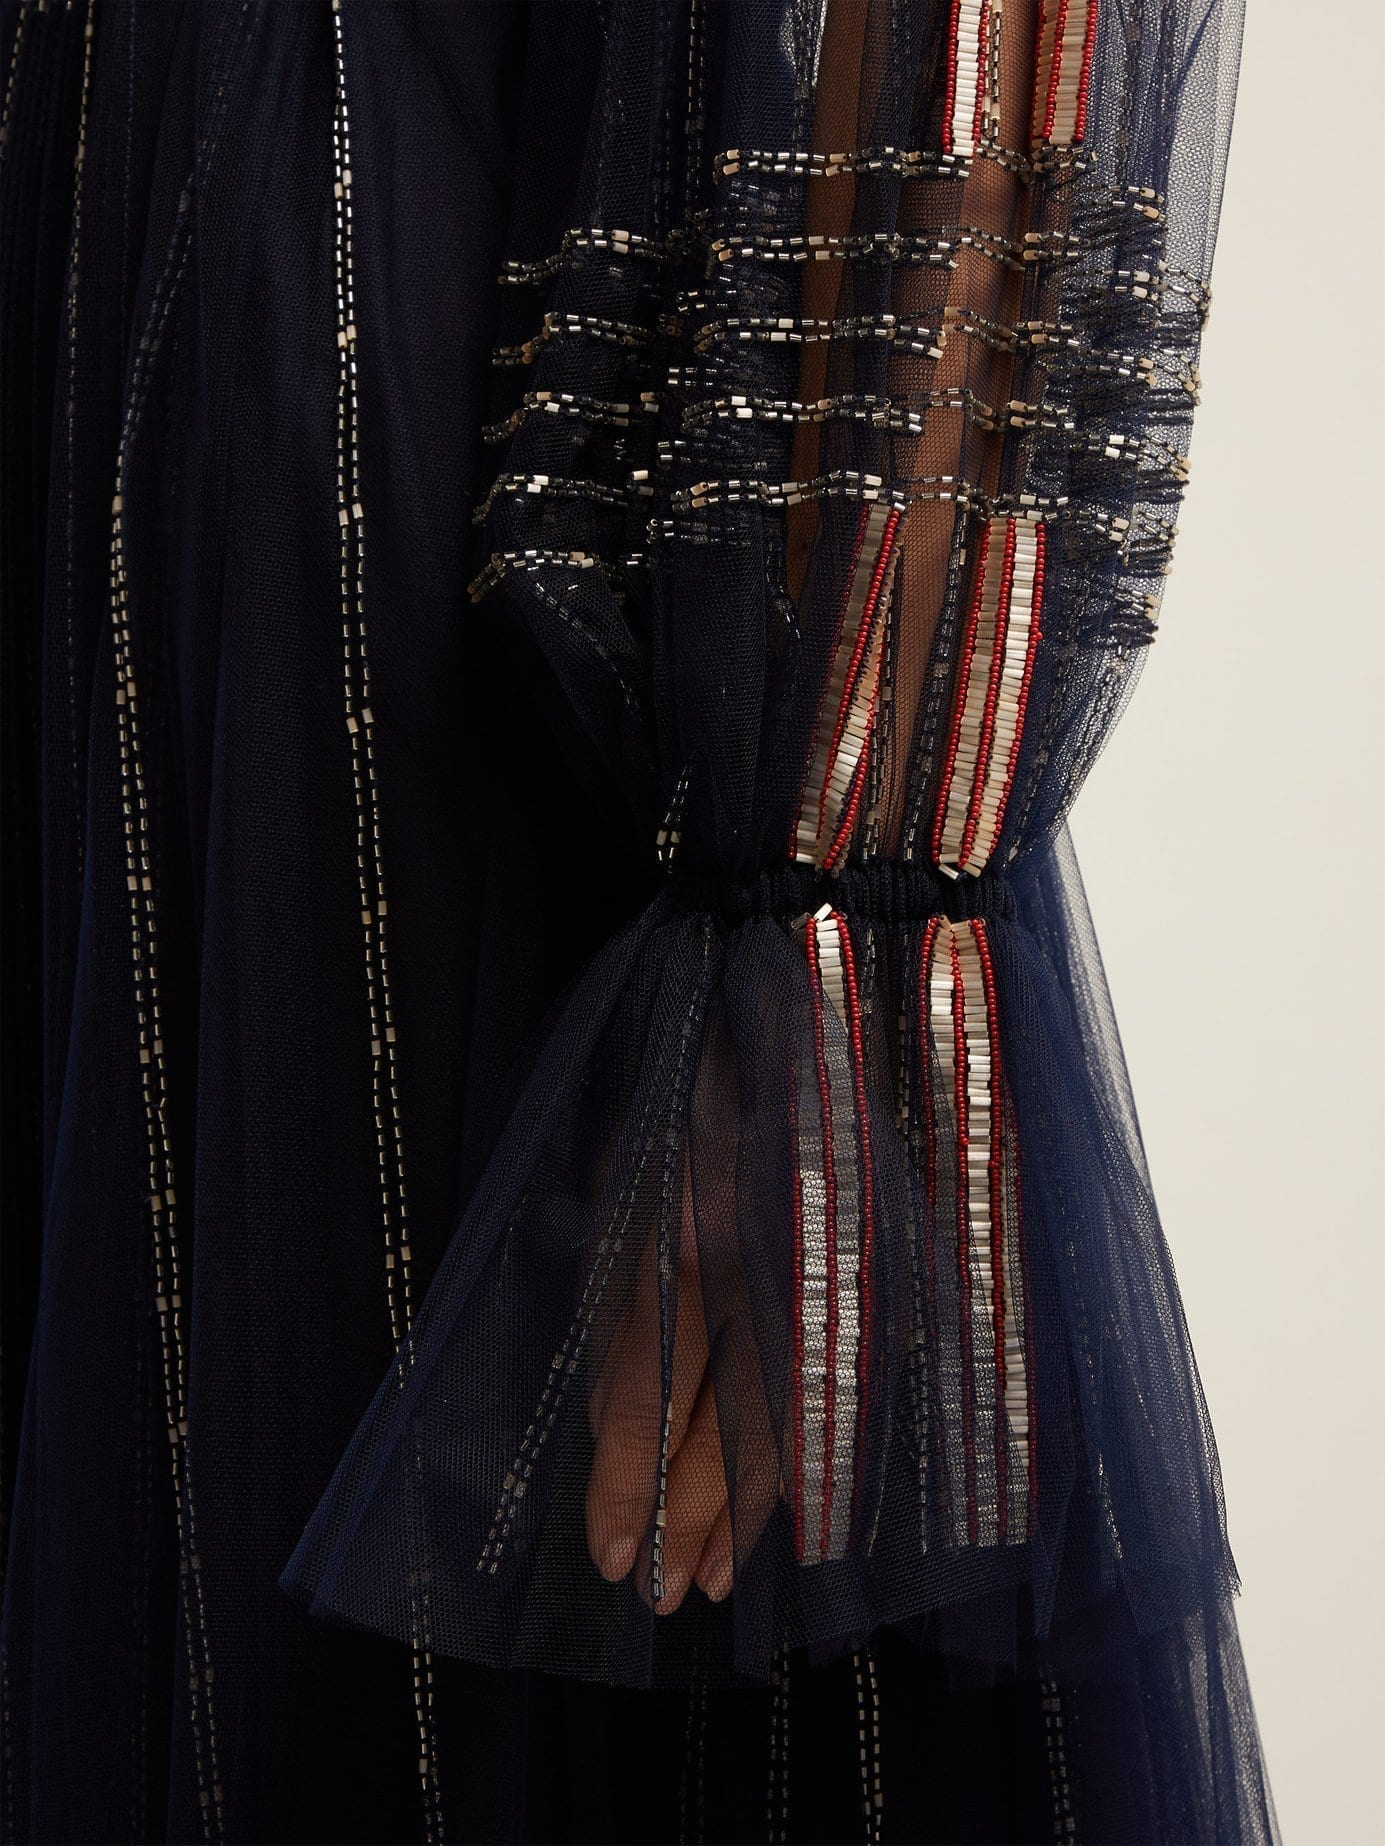 313a0a51a63bf VALENTINO Bead Embroidered Tulle Navy Gown - We Select Dresses